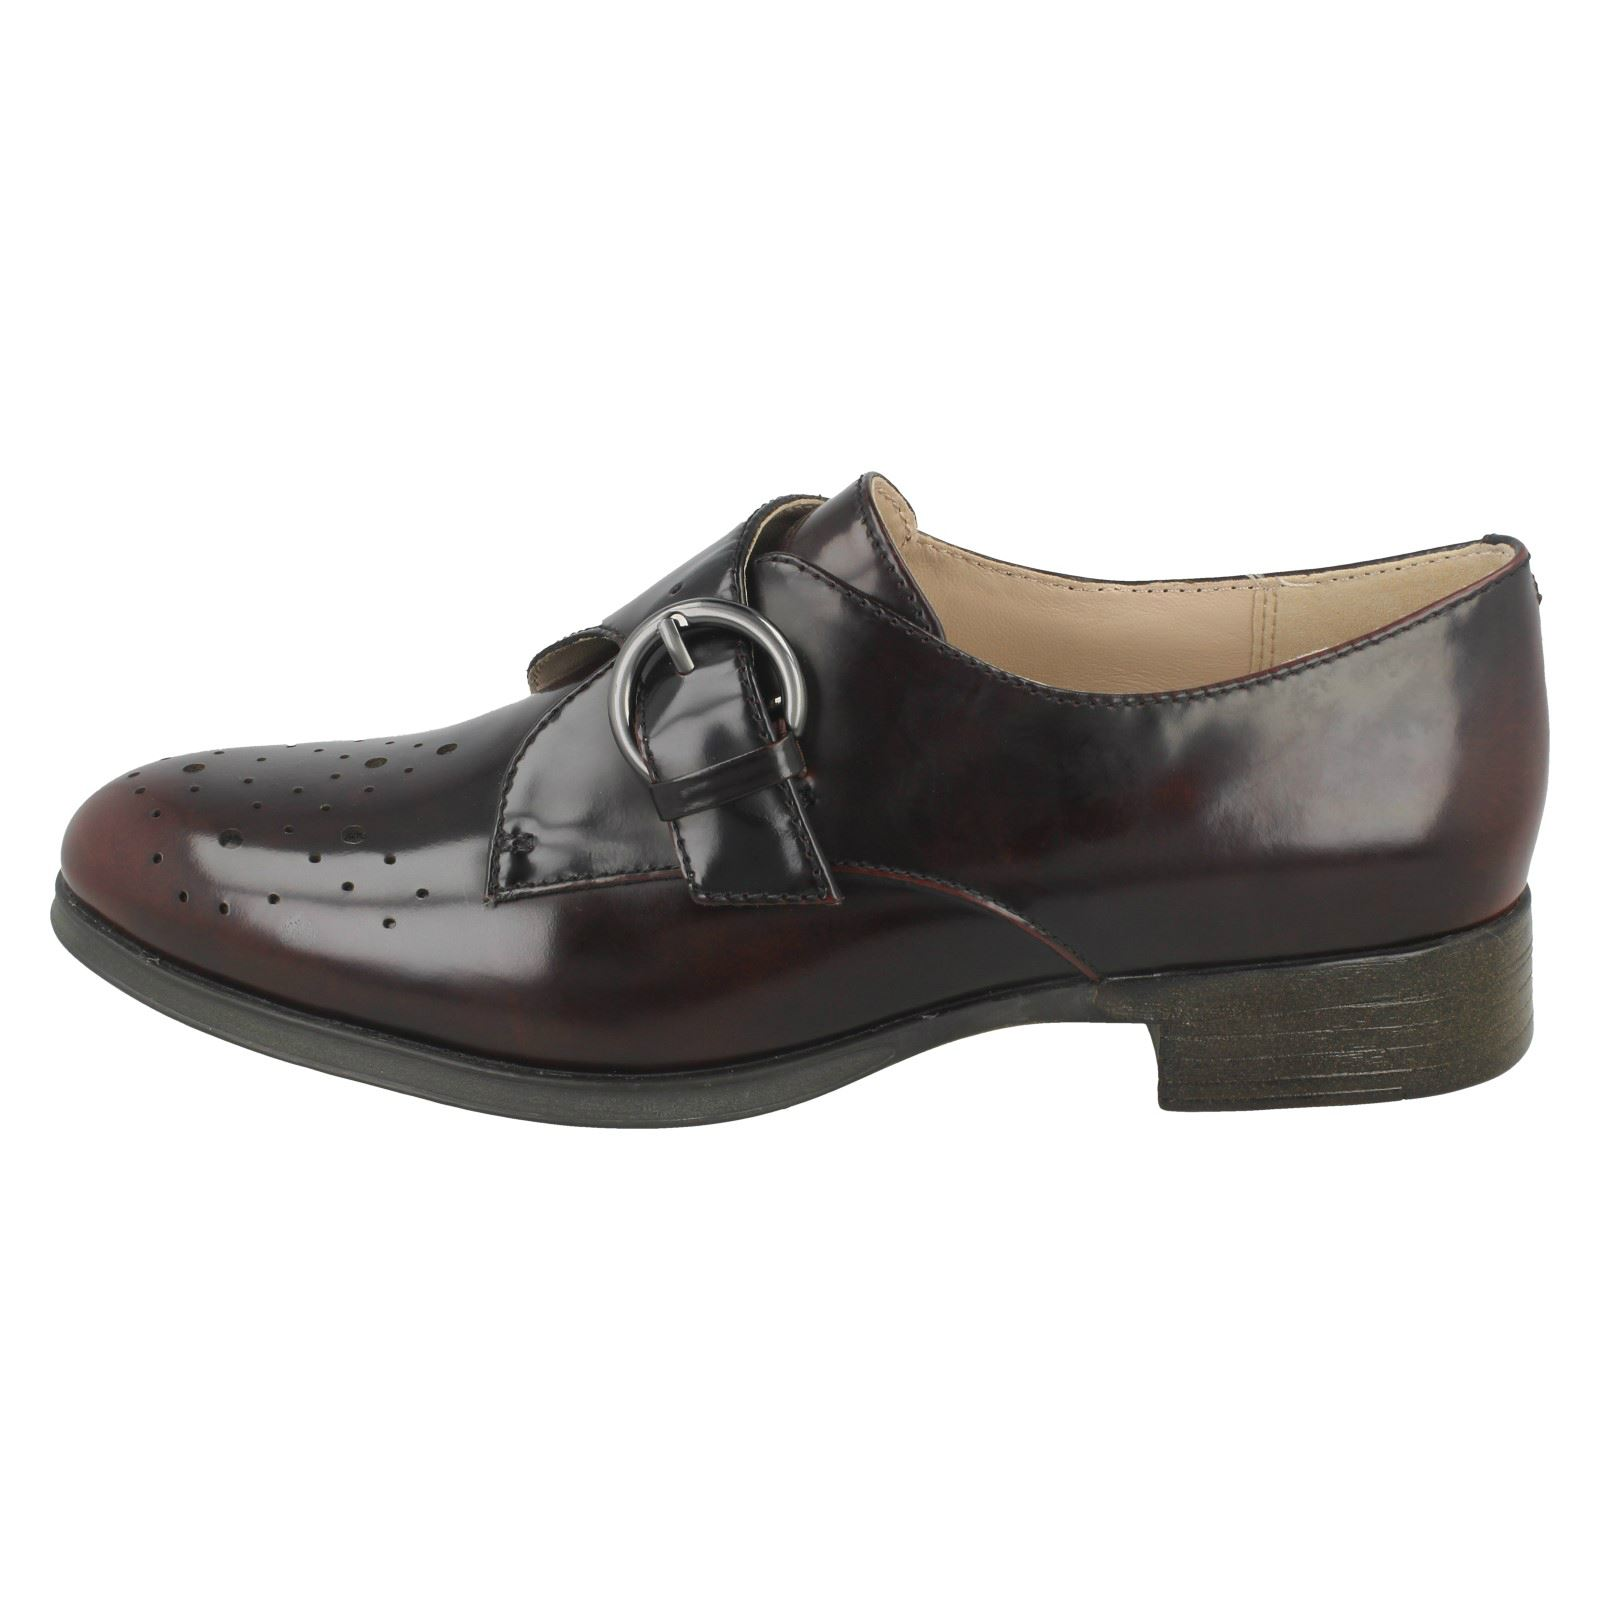 Mr/Ms Ladies Clarks Formal Busby Shoes Busby Formal Jazz Excellent craft Comfortable touch Caramel, gentle 65f3b1